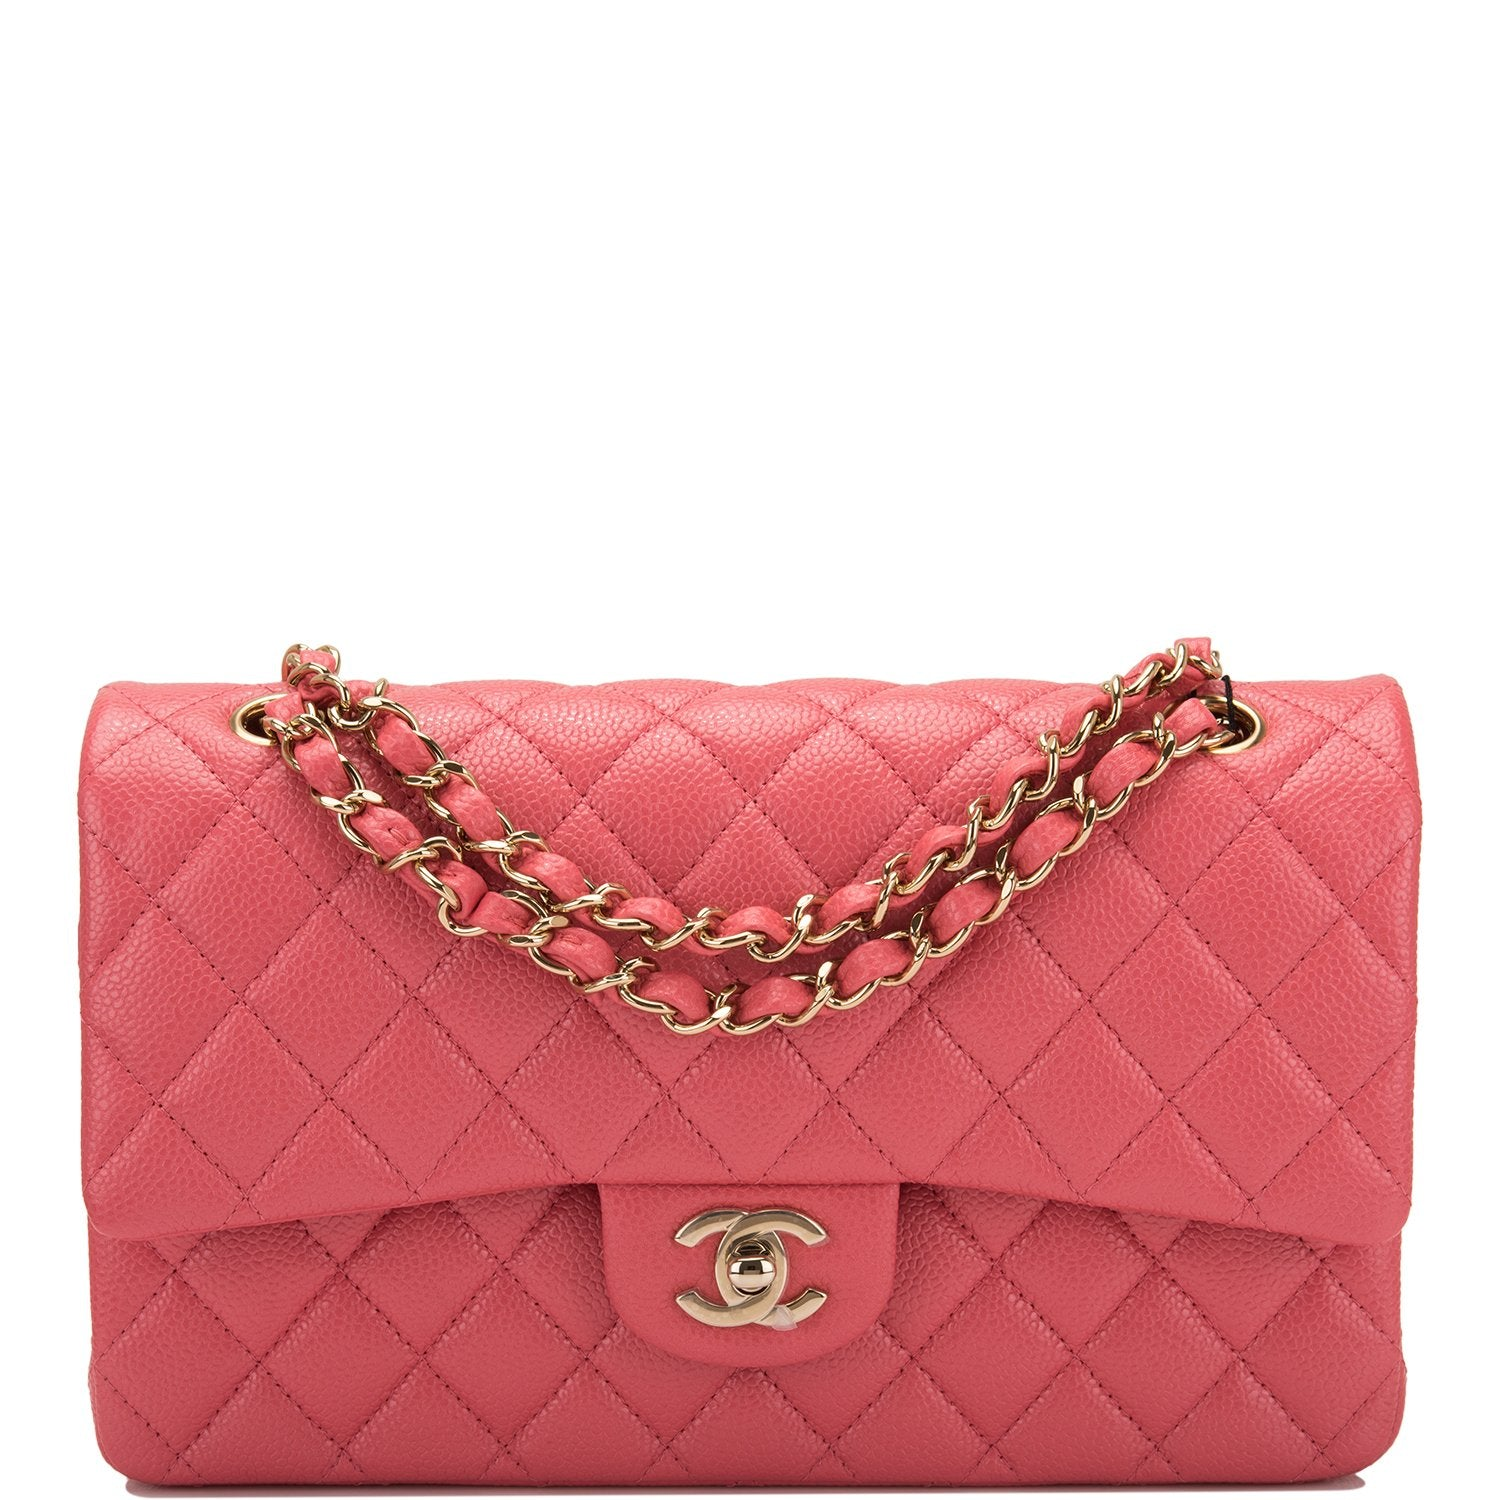 acc23275e470 Chanel Pink Shiny Quilted Caviar Medium Classic Double Flap Bag ...